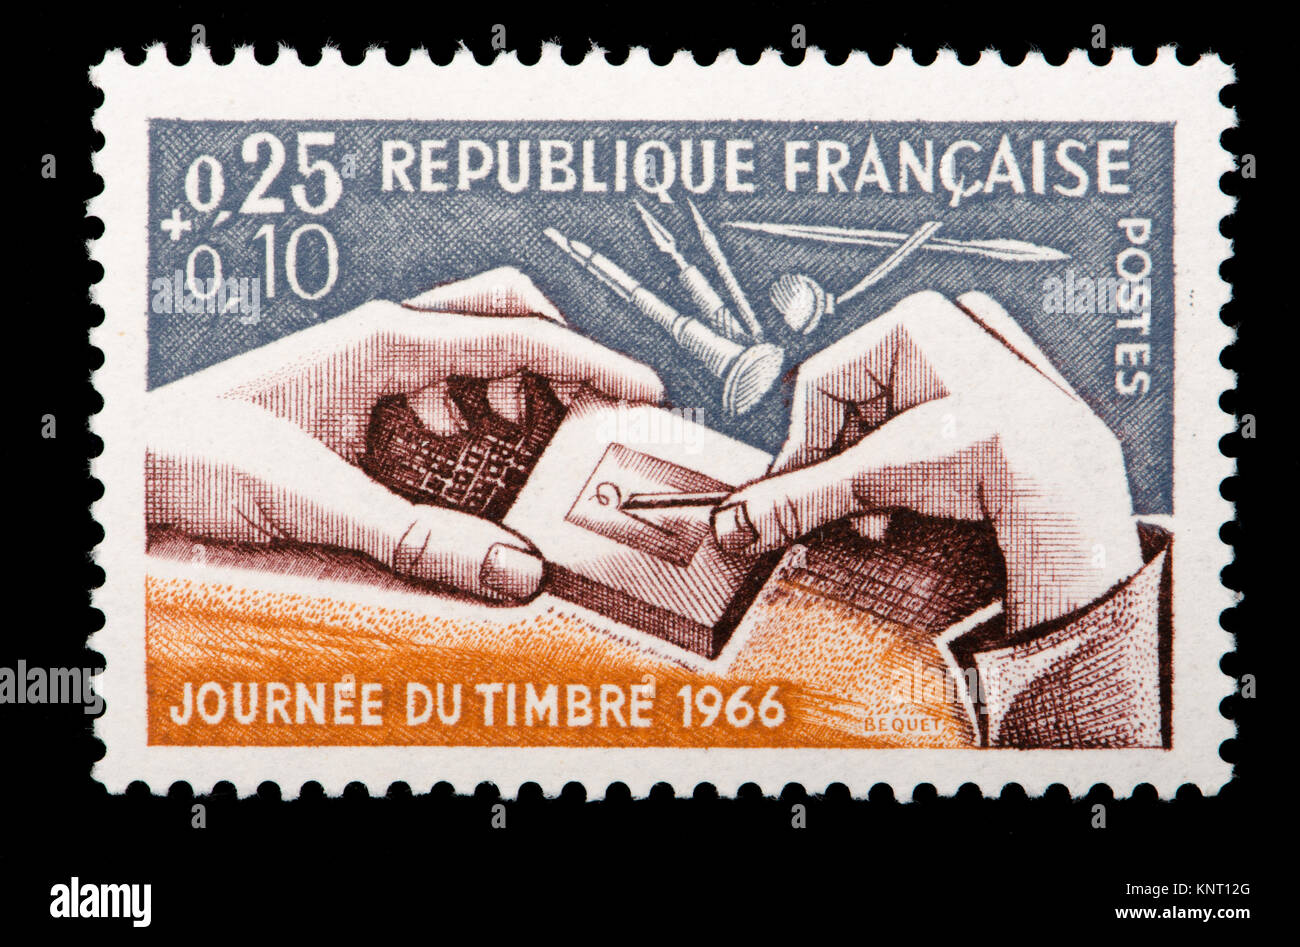 French postage stamp (1966)  : Journee du Timbre / Day of the Stamp 1966 - engraver at work - Stock Image